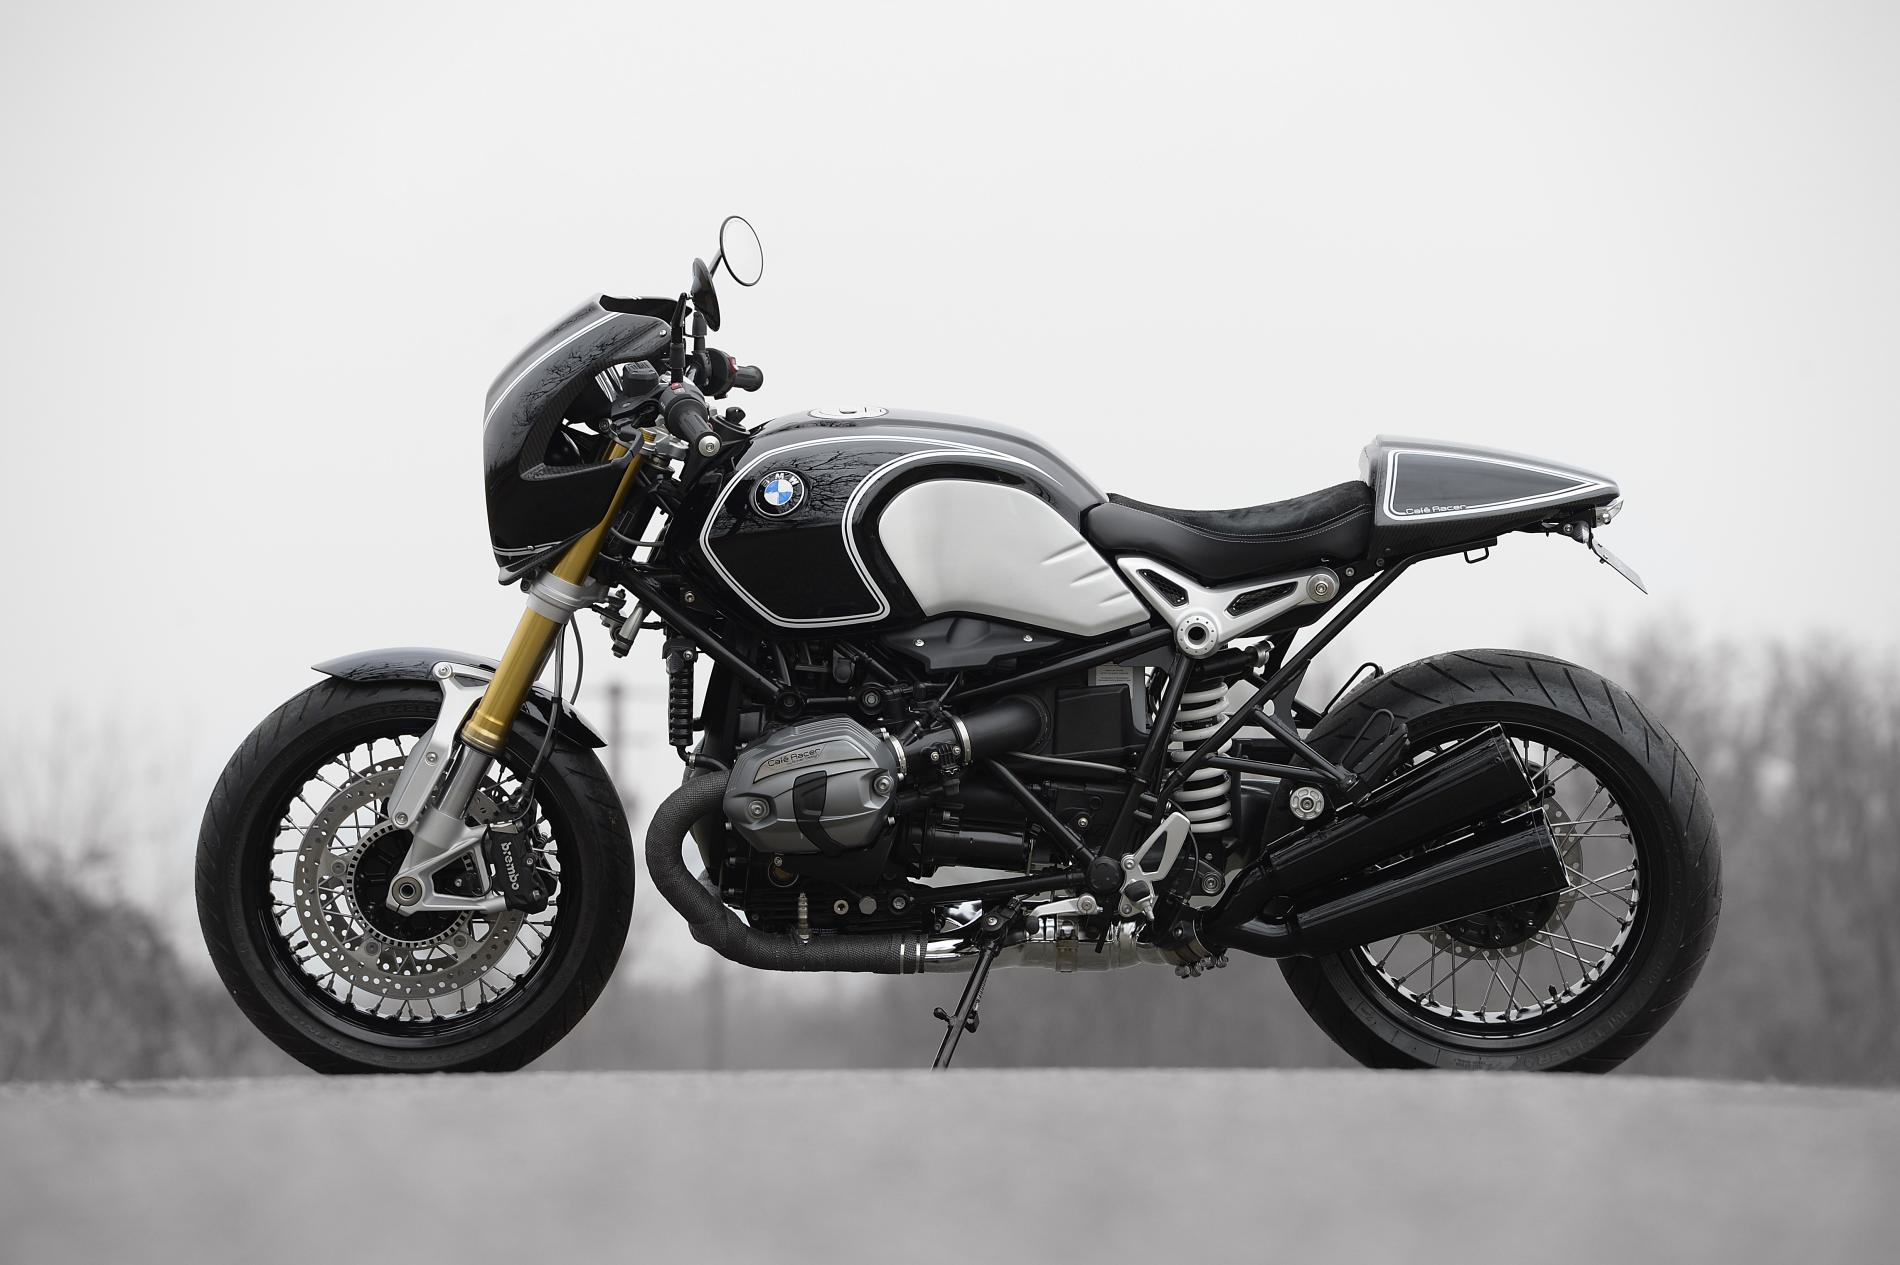 bmw r ninet caf racer moto bmw. Black Bedroom Furniture Sets. Home Design Ideas